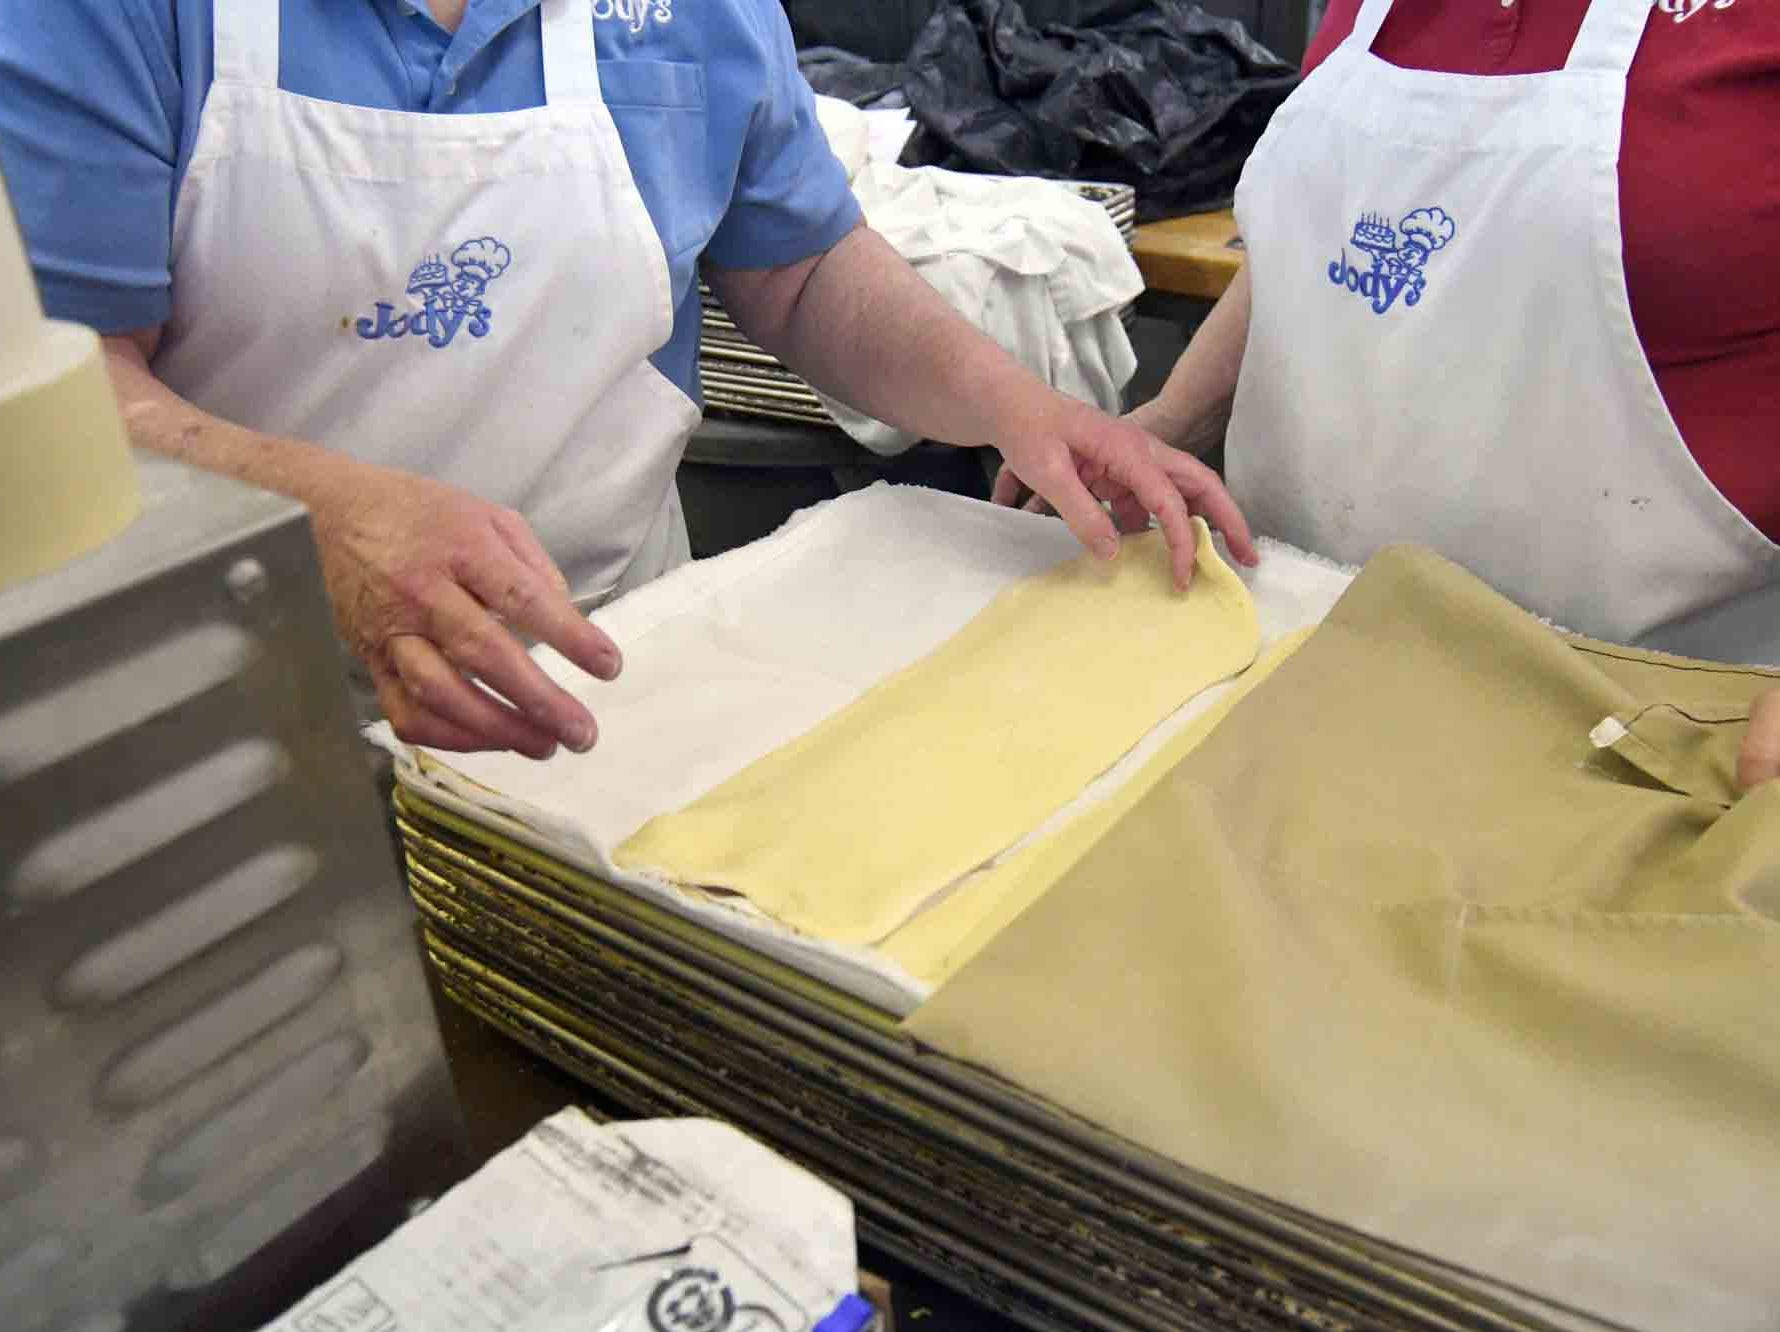 Flatten dough is placed on a tray to be placed in the freezer as Jody's Bakery prepares to make king cakes in Hattiesburg.